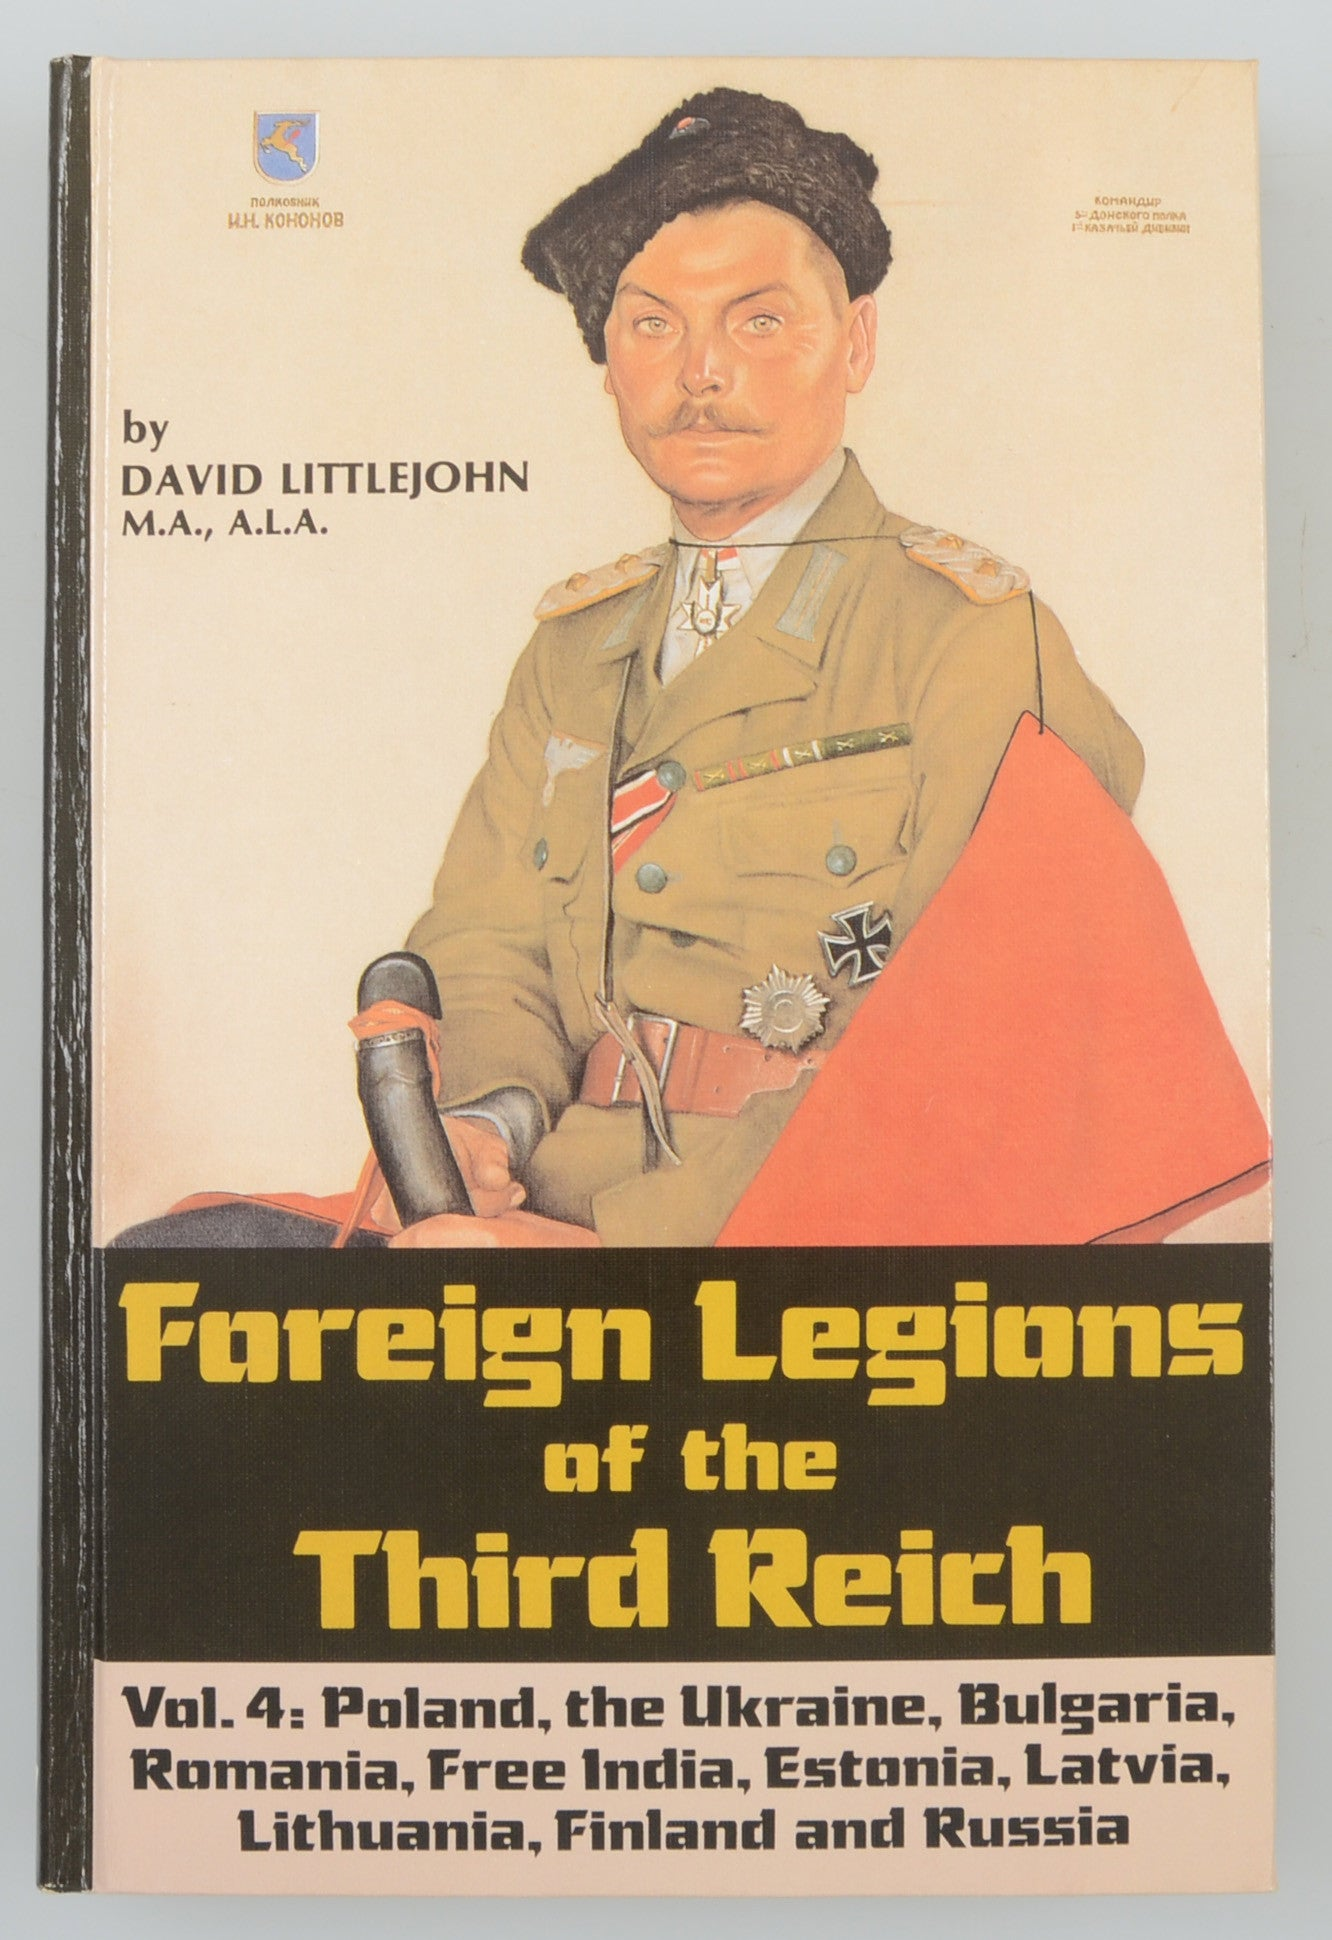 Foreign Legions of the Third Reich Vol 4